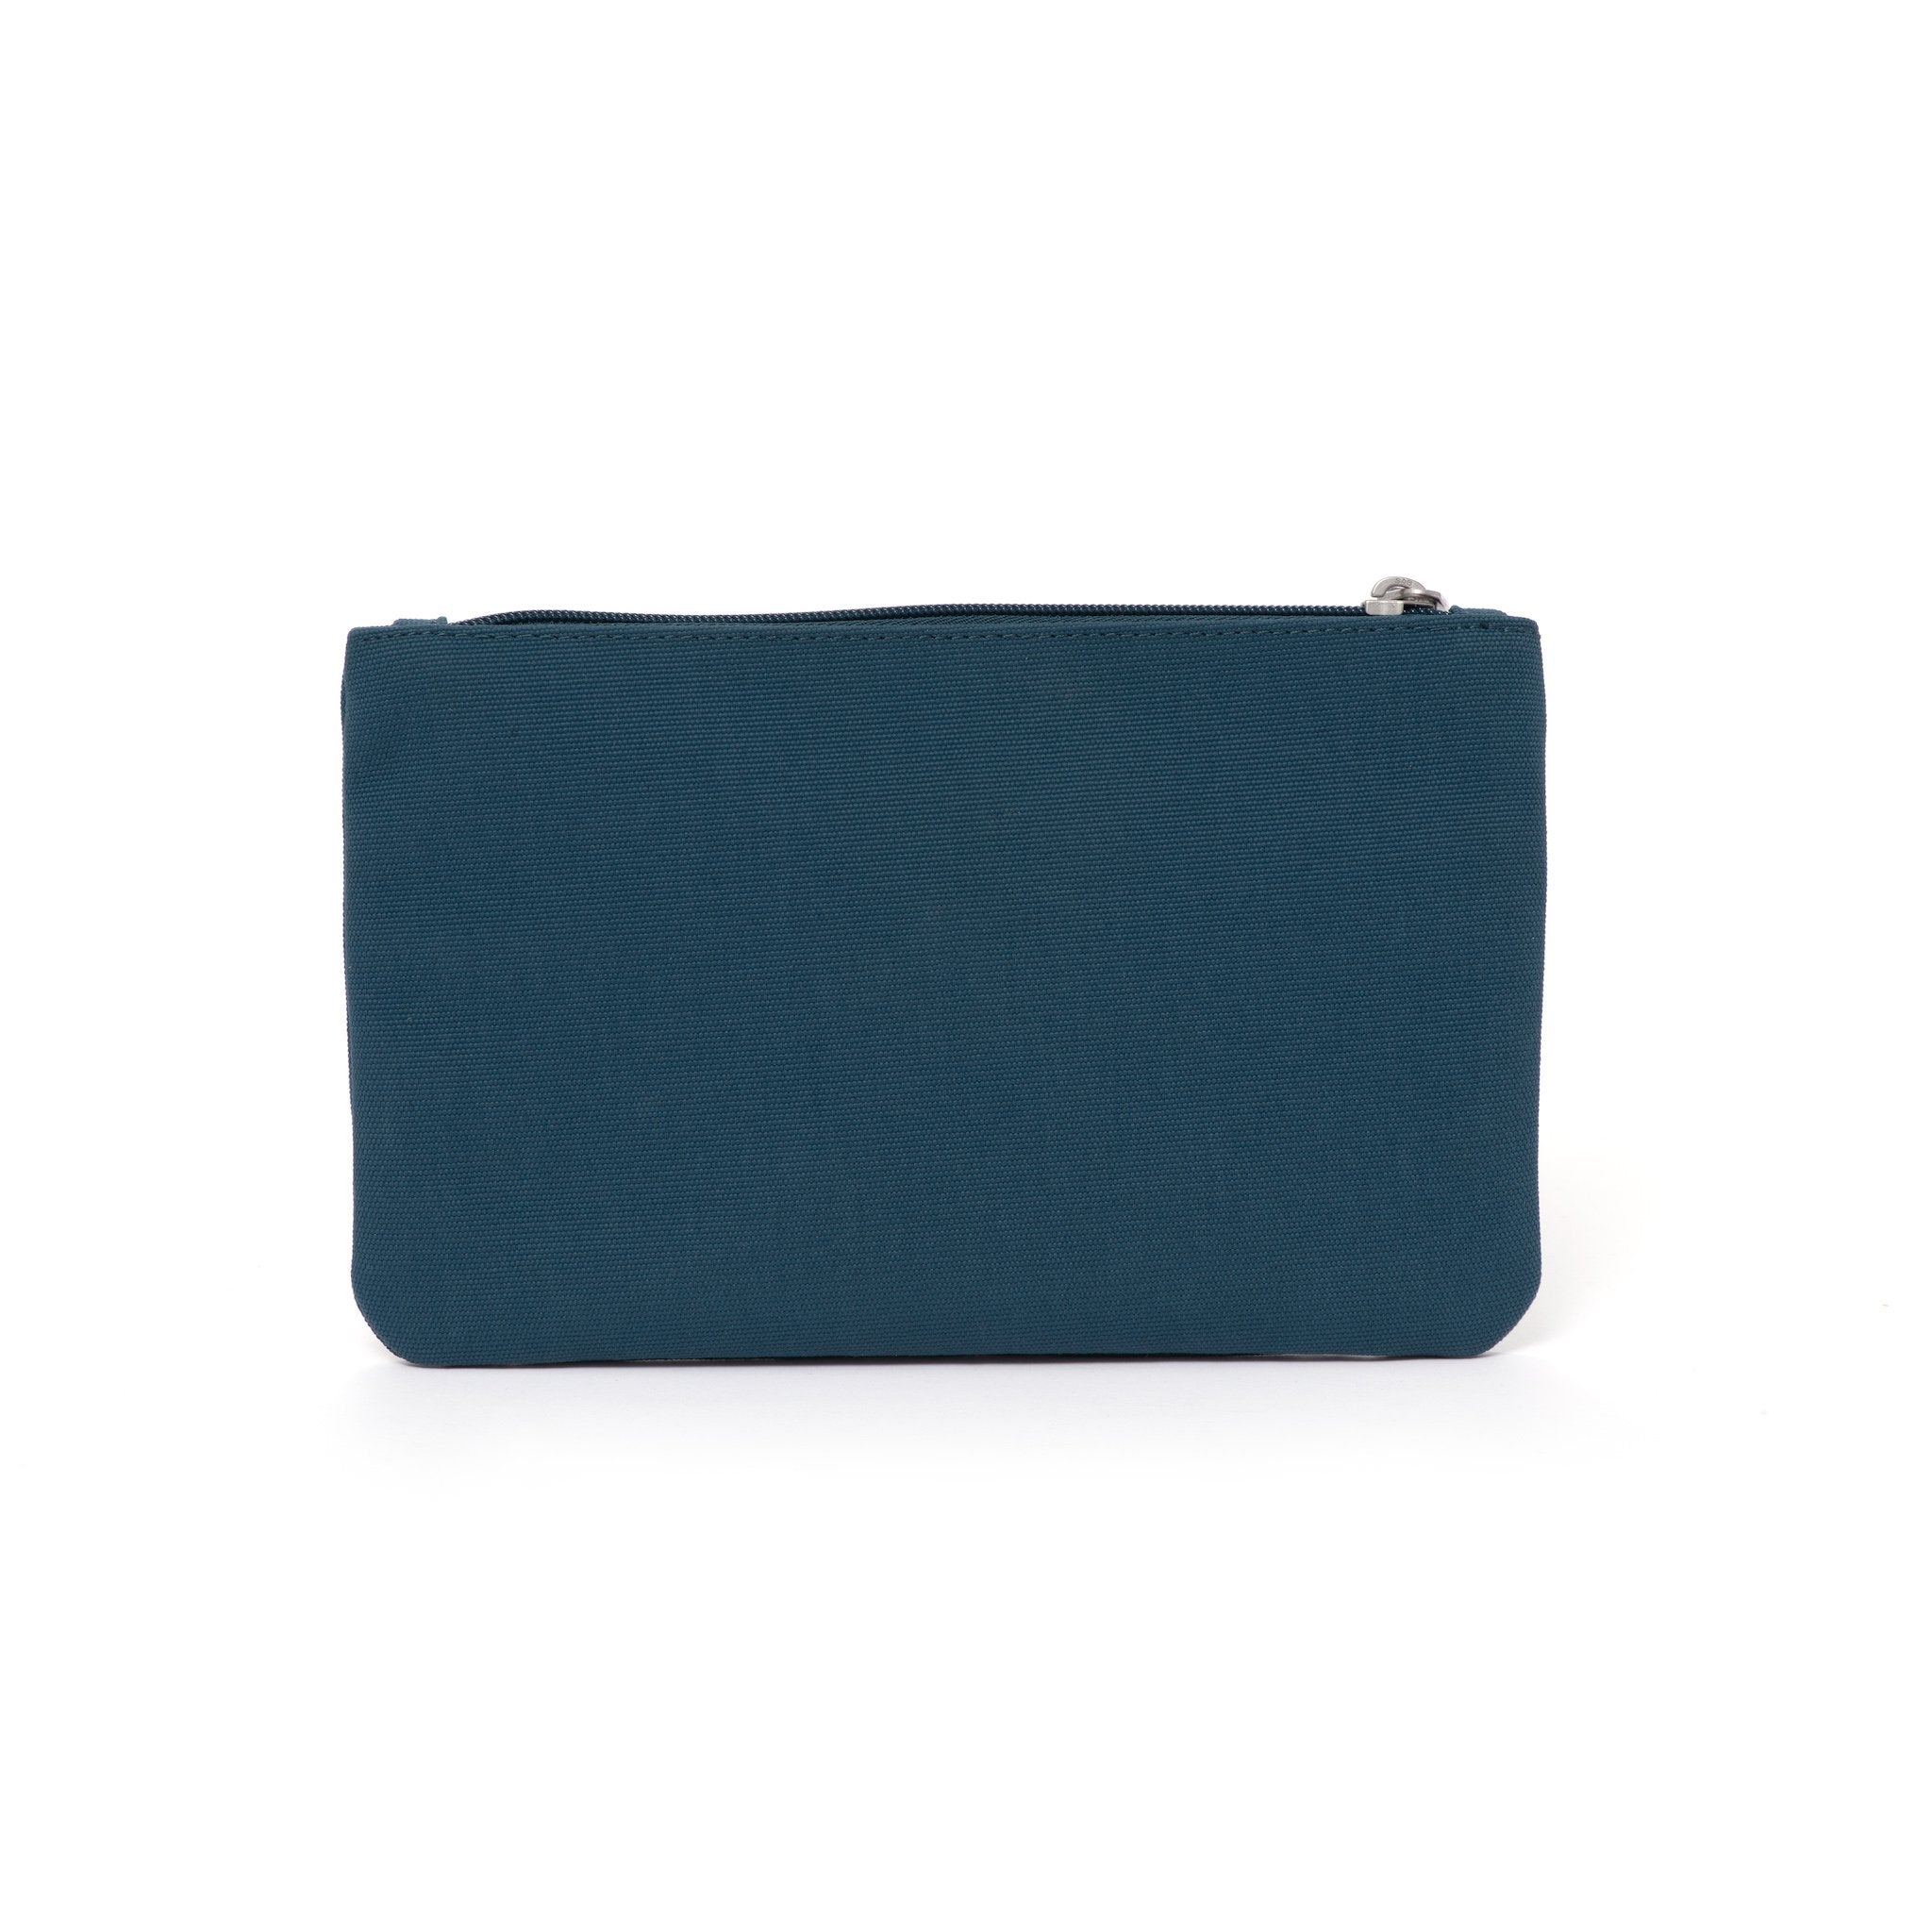 Blue canvas travel wallet.